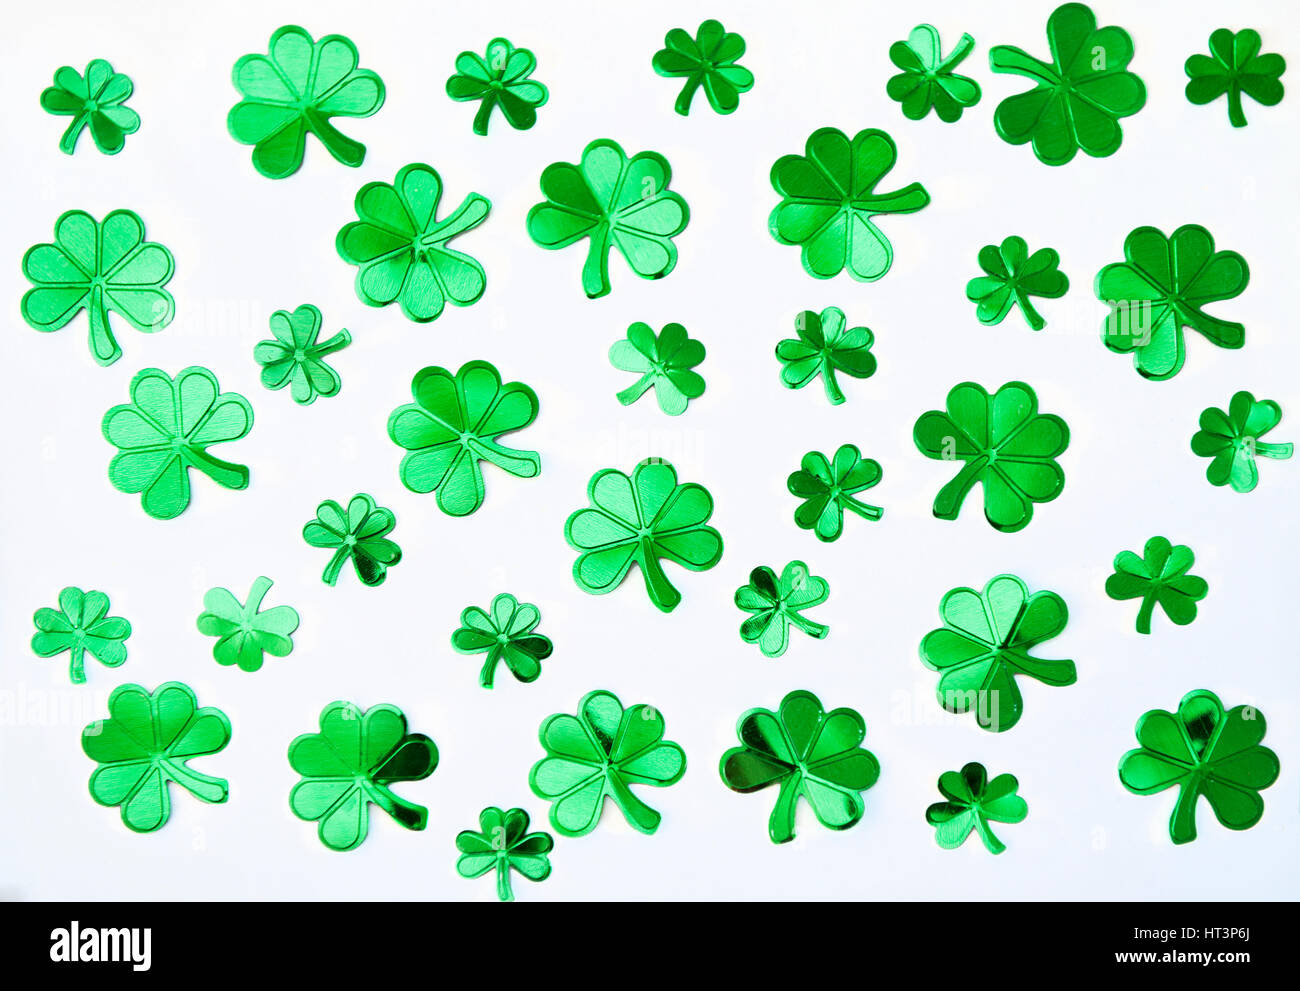 An abstract of green confetti shamrocks in a random pattern against a white background - Stock Image